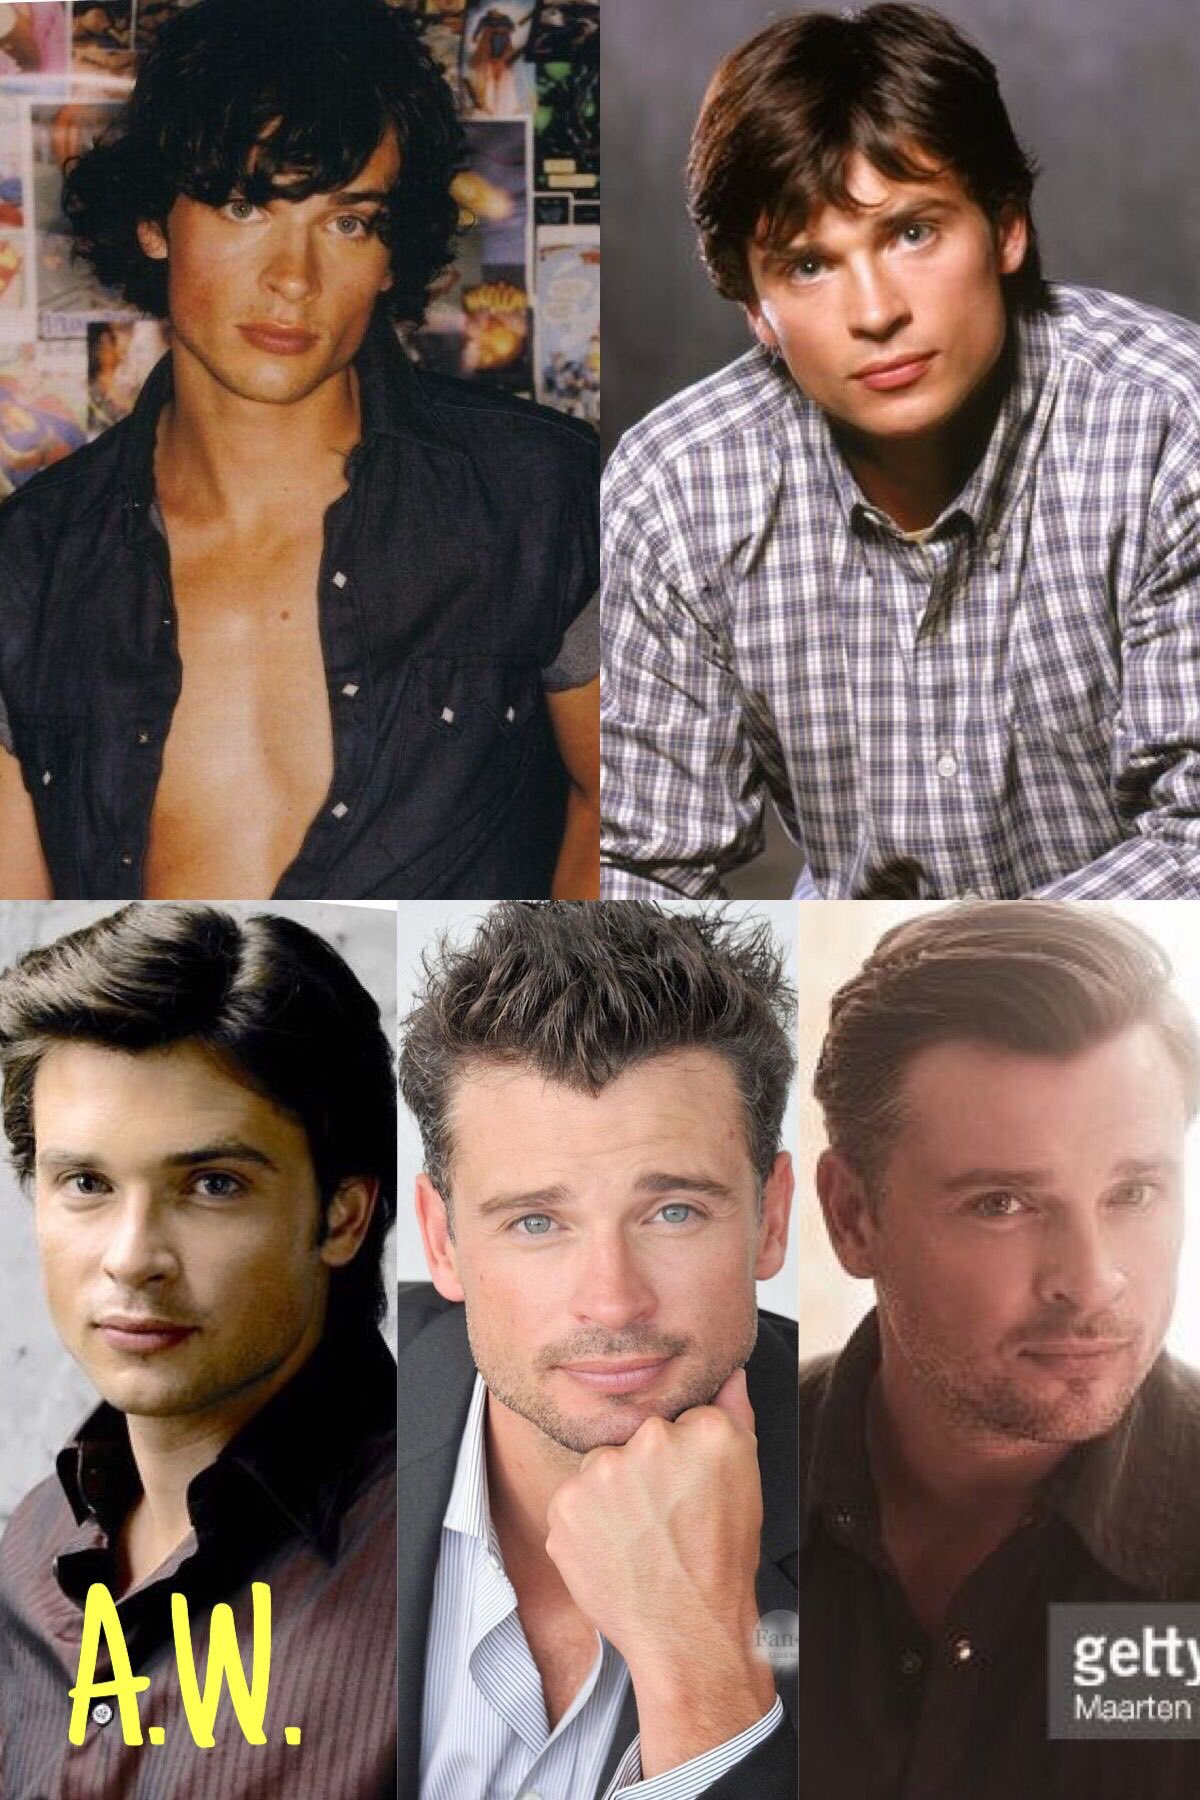 Love this sexy and talented man #TomWelling ゚リペリペリペリペリペリリ゚リリ゚リリ゚リリ゚リリ¬ンᄂᄌマ¬ンᄂᄌマ¬ンᄂᄌマ¬ンᄂᄌマ¬ンᄂᄌマ゚メピメピメピメピメピヤᆬ゚ヤᆬ゚ヤᆬ゚ヤᆬ゚ヤᆬ https://t.co/VTtj0ik6ep